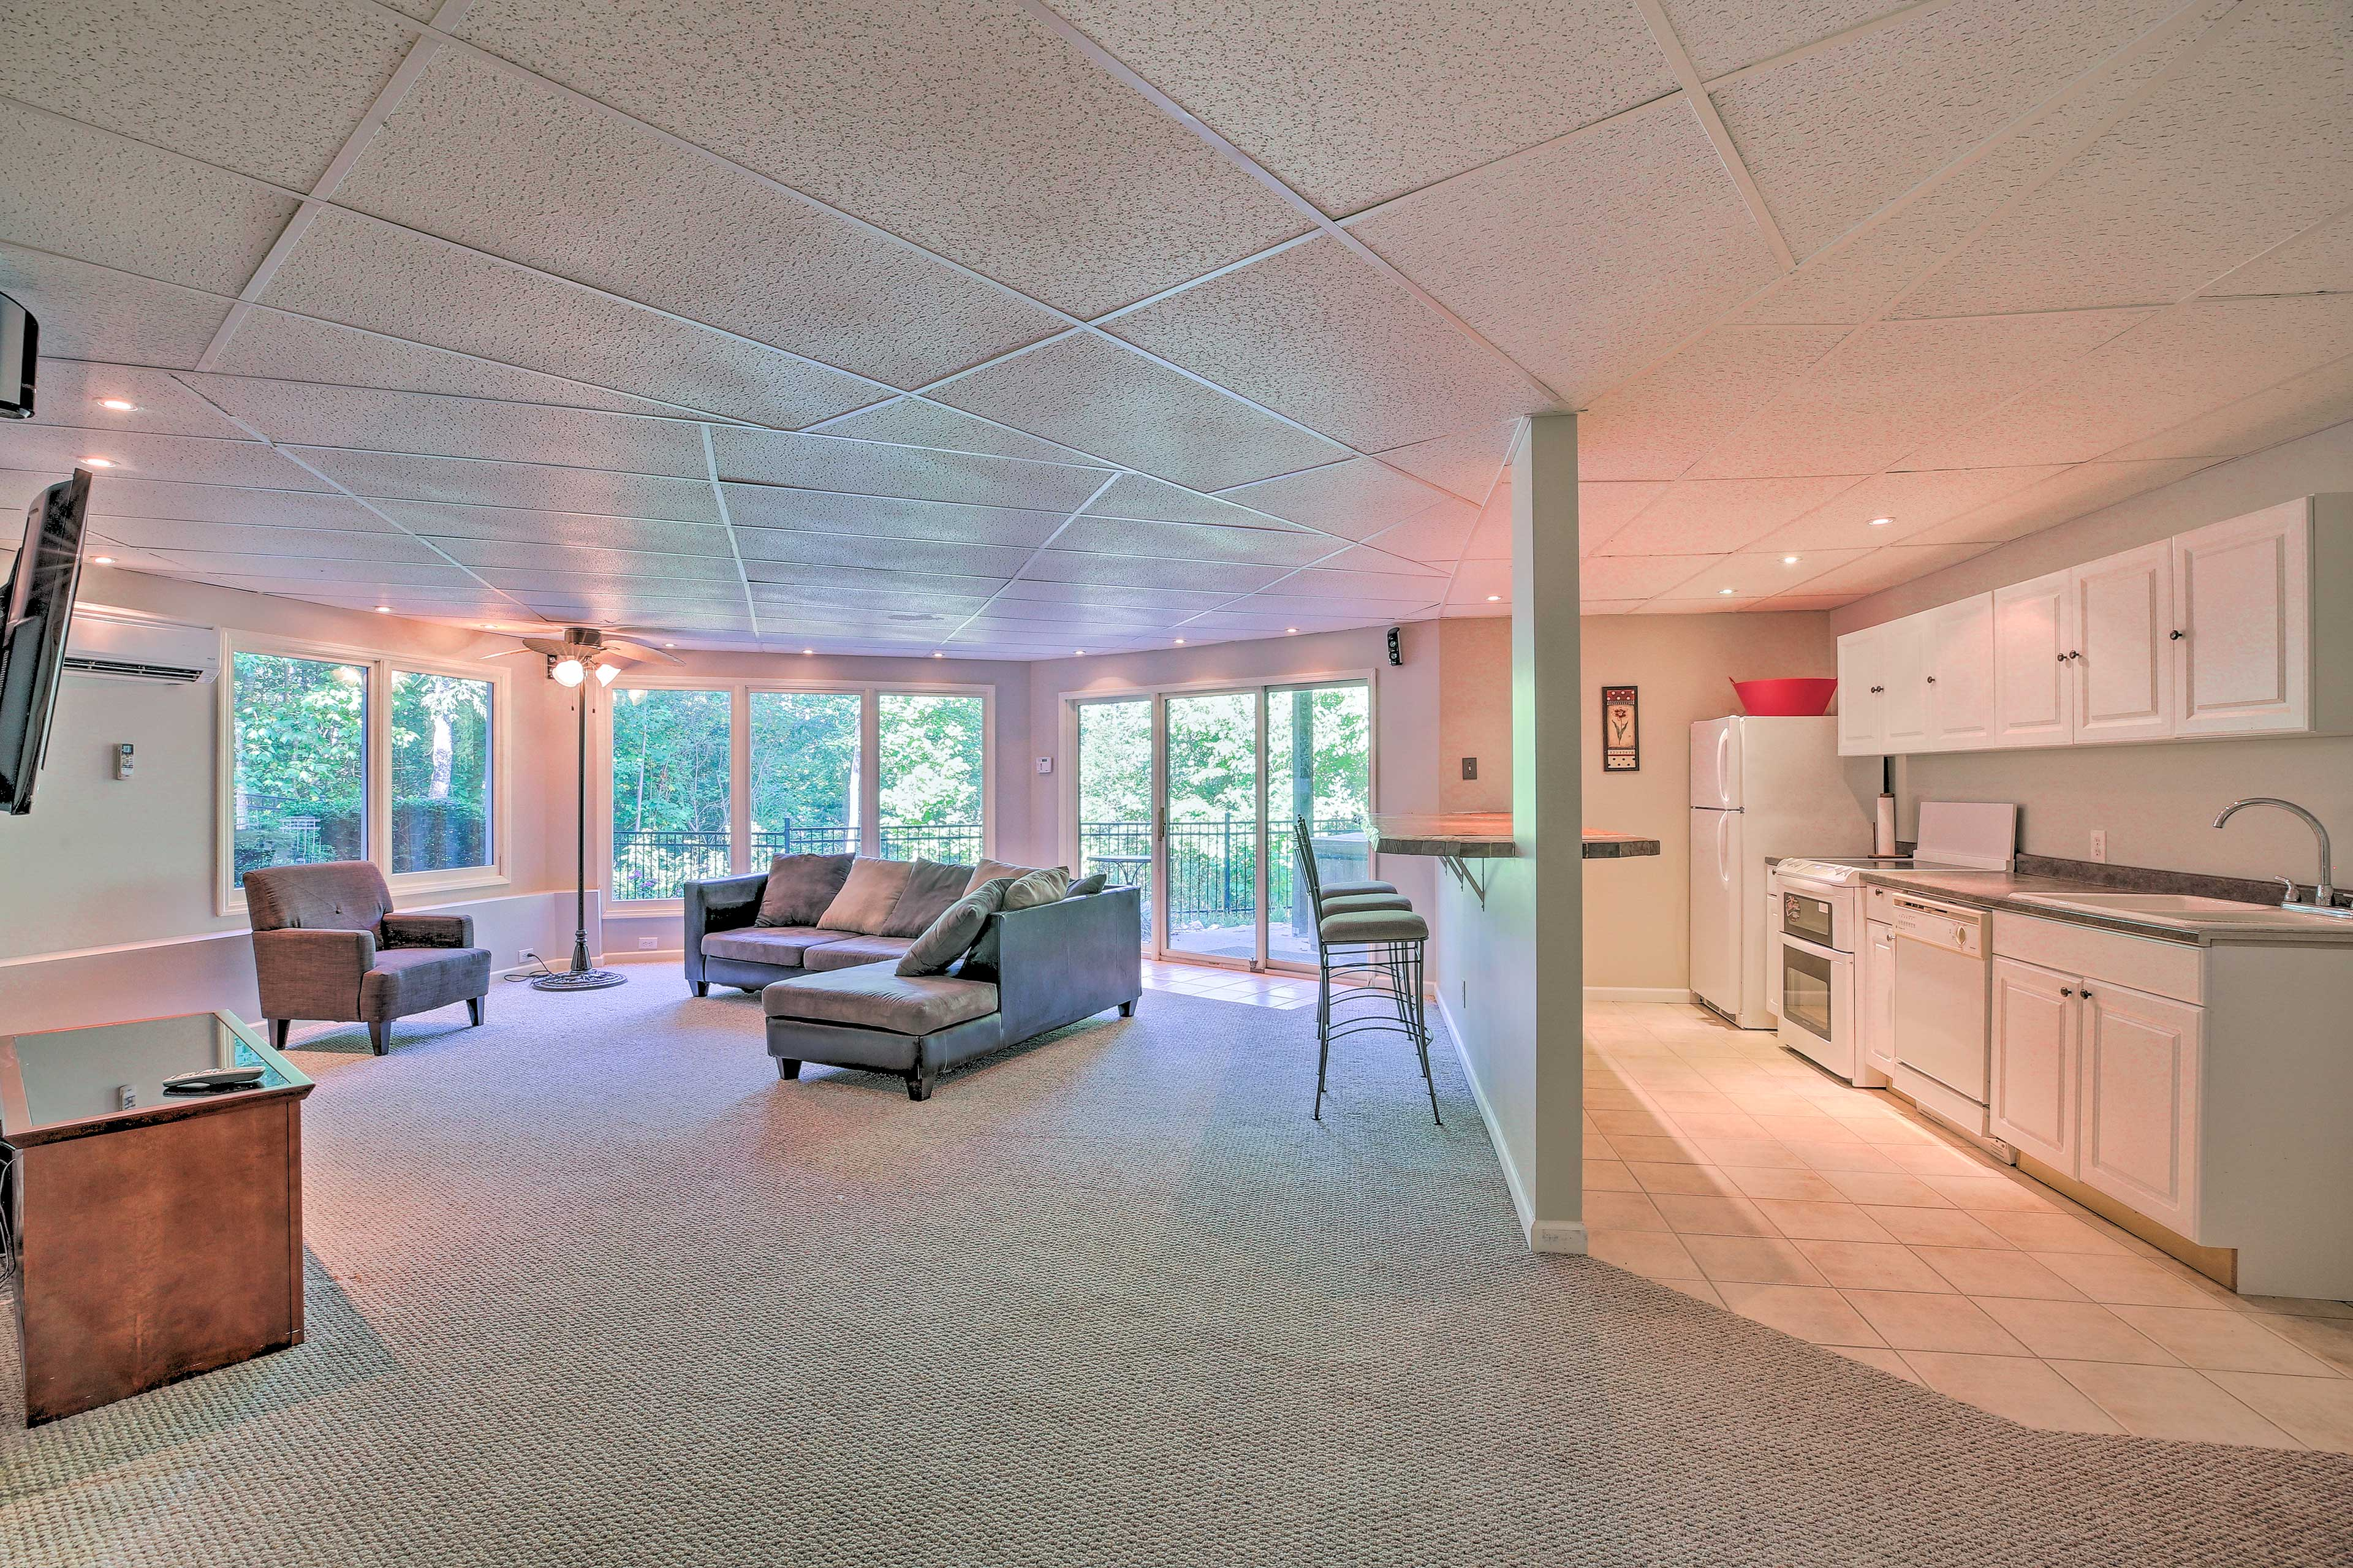 The theater room features a second fully equipped kitchen.